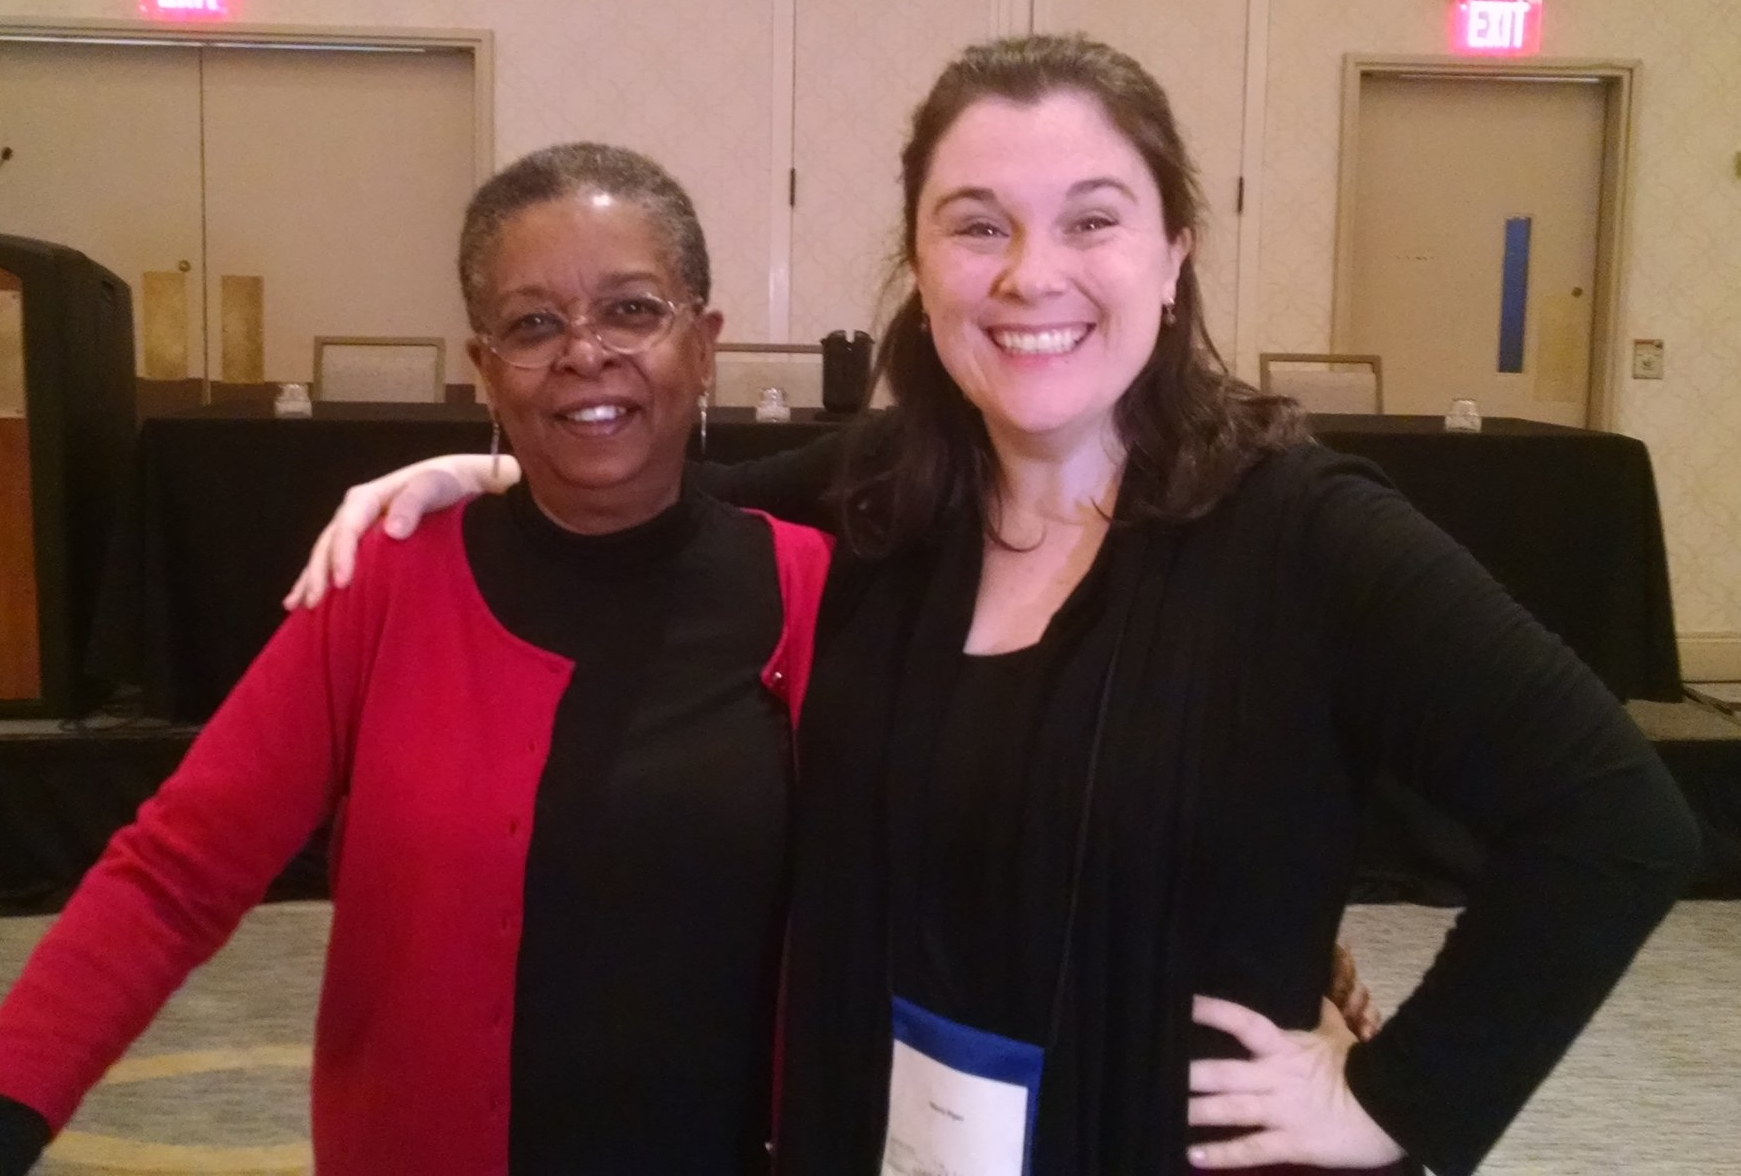 As a writer and lifelong fan of American Historicals, Beverly Jenkins is a legend. Getting to hear her speak out writing and her career--and getting to meet her-- was a highlight of the whole event.